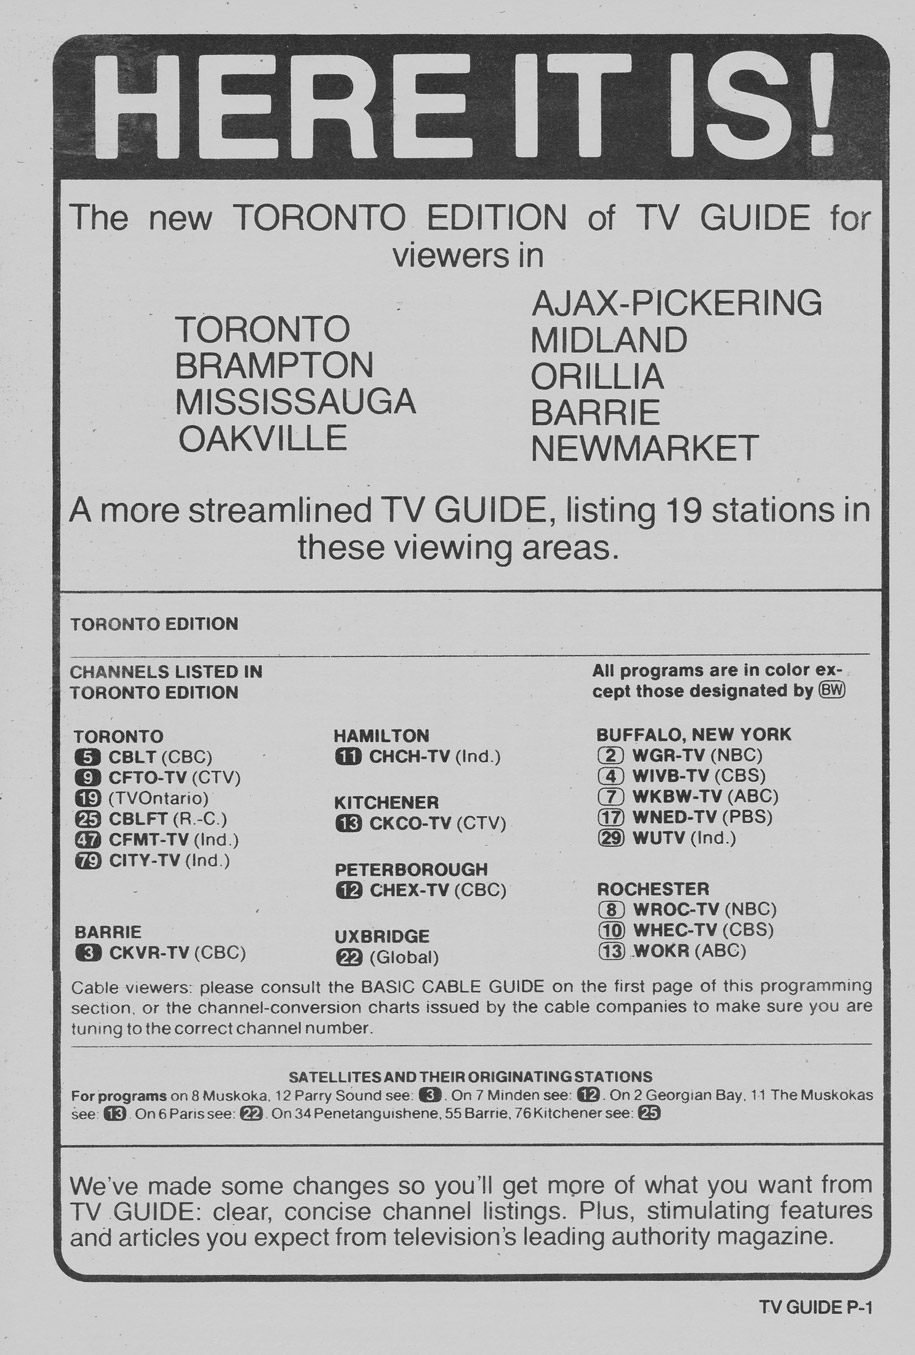 TV Guide August 23 1980 Toronto Edition The New Toronto Edition